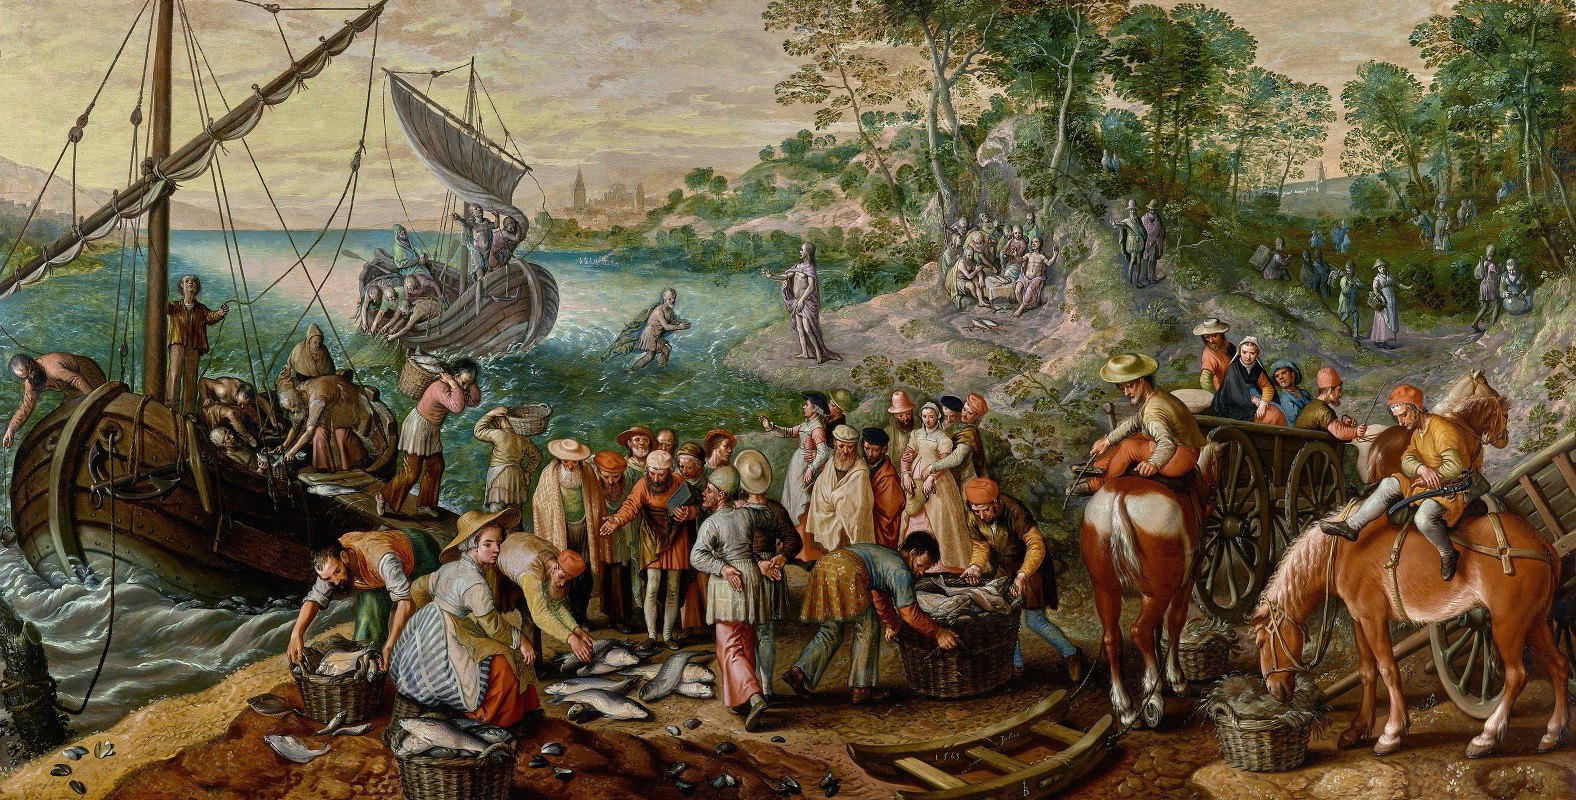 Joachim Beuckelaer - The Miraculous Draught of Fishes